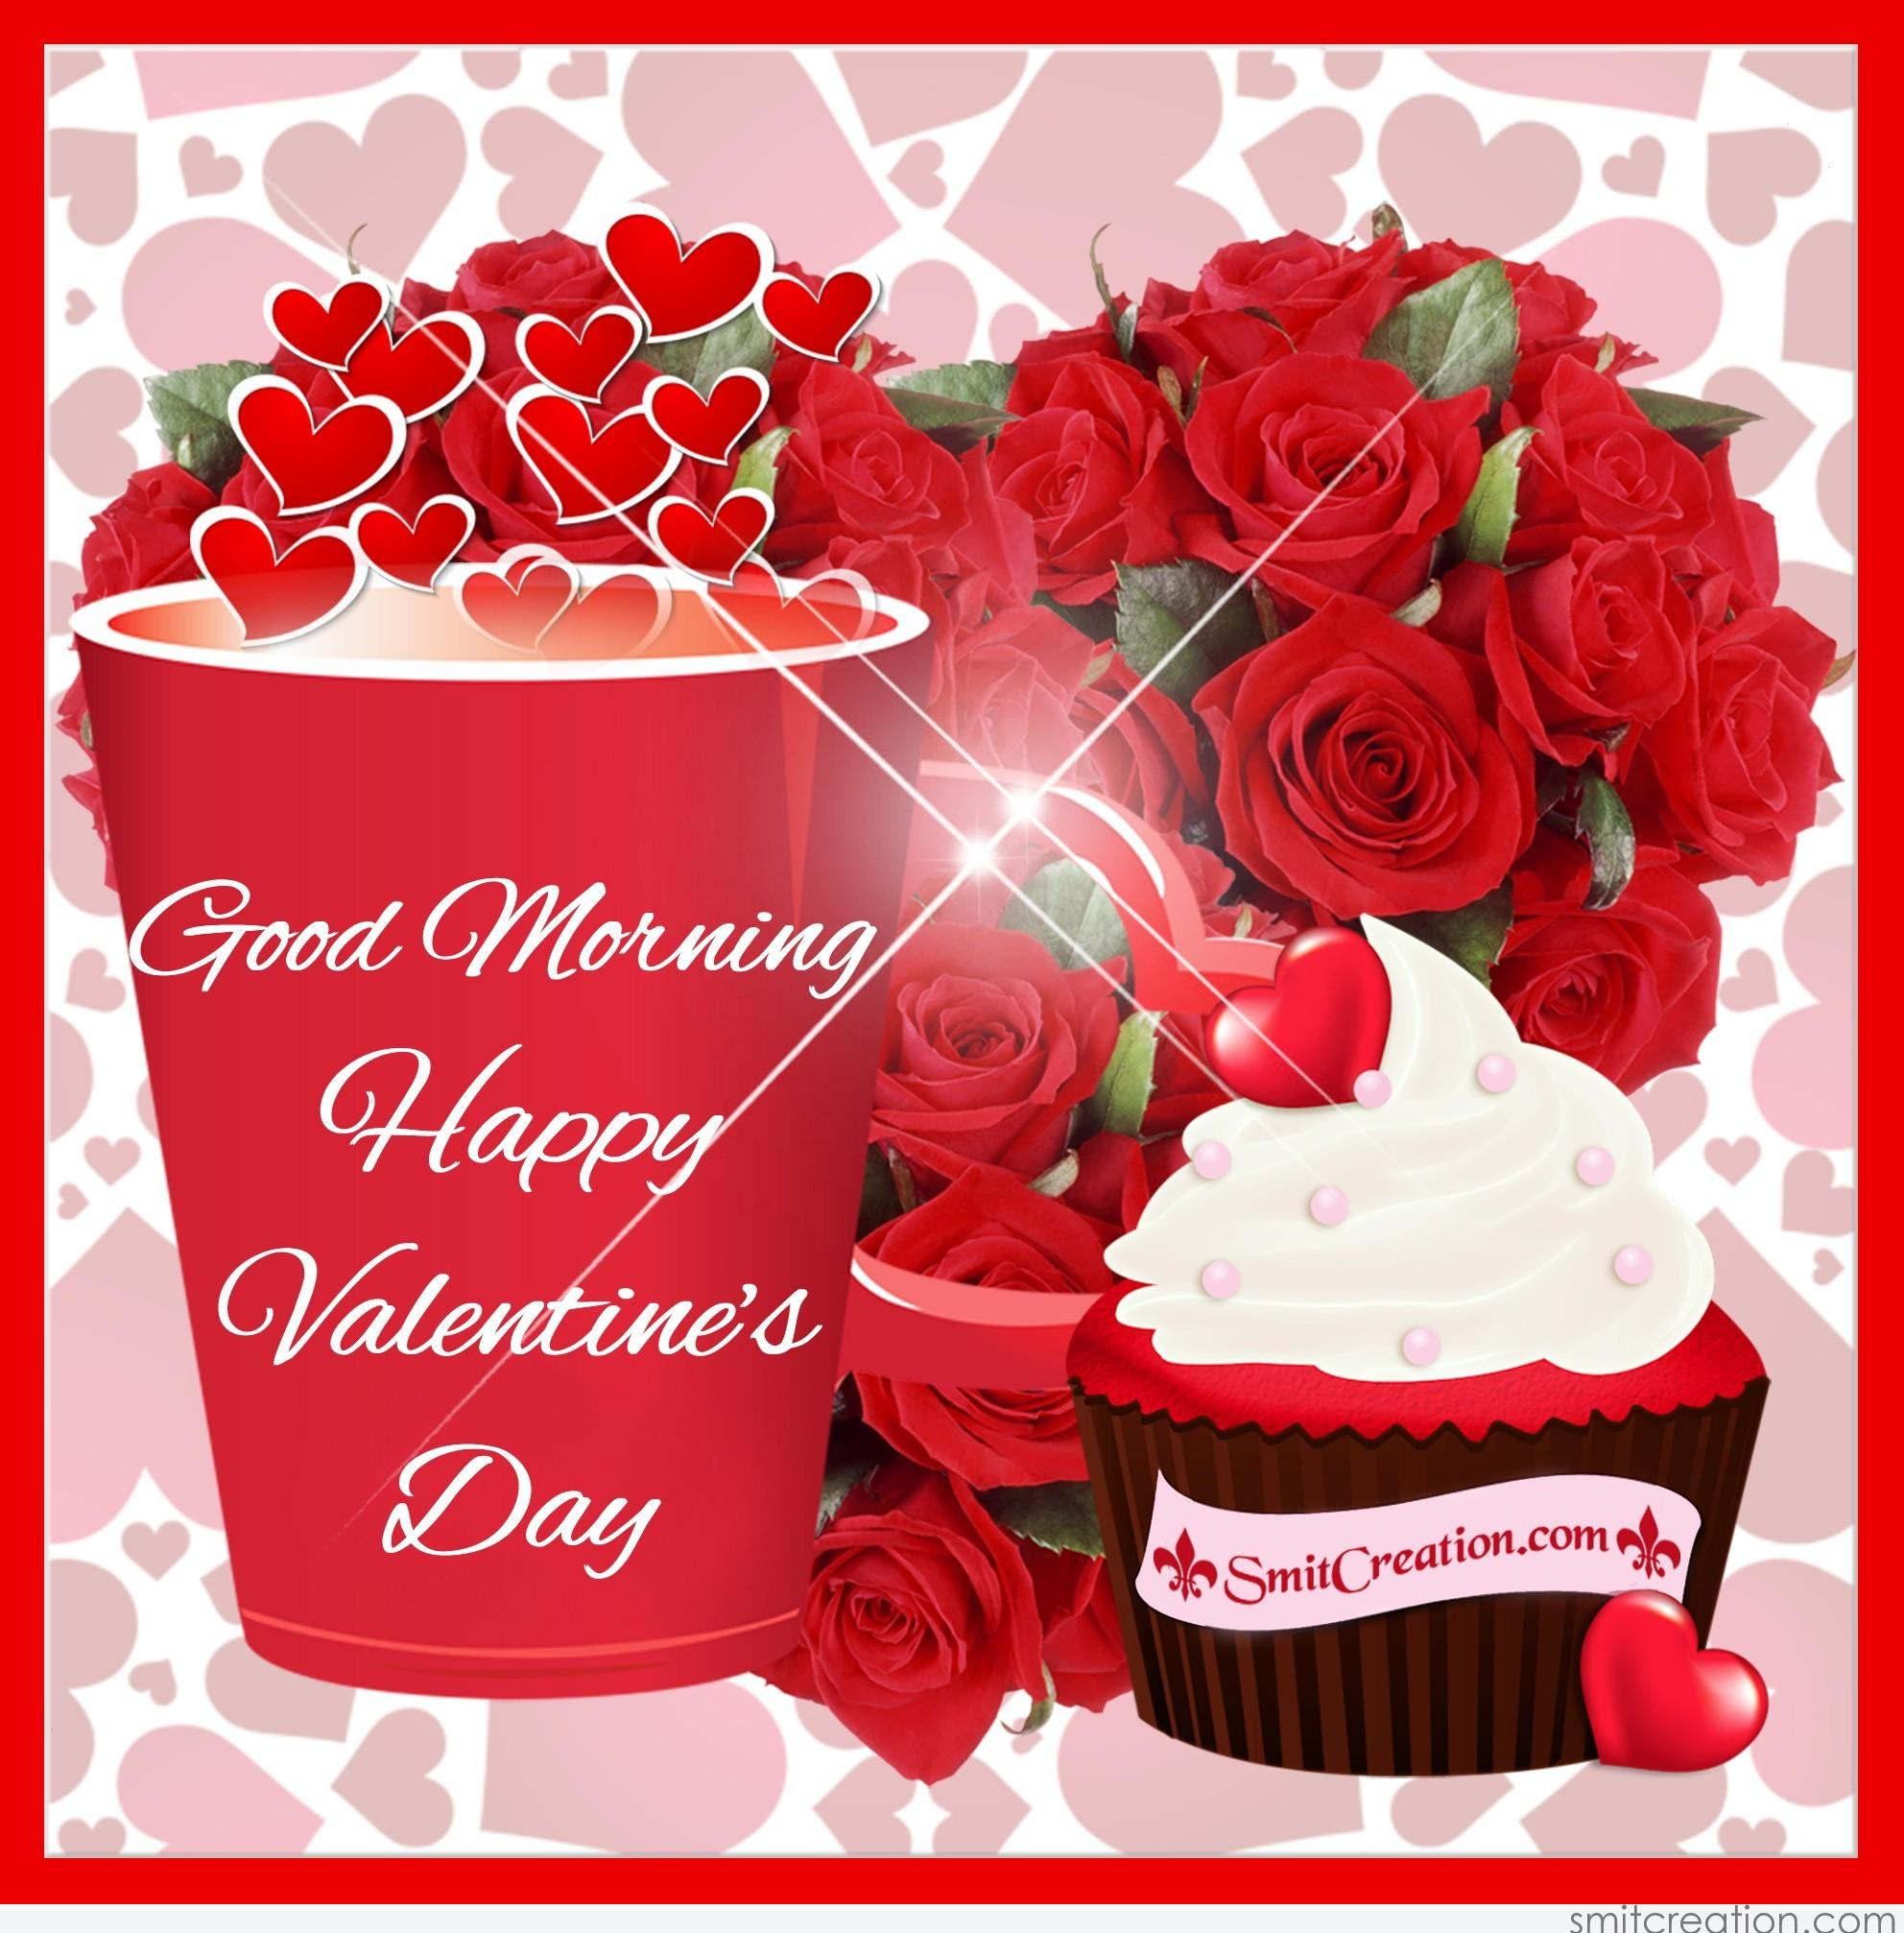 Good Morning My Love Happy Valentines Day : Good morning love pictures and graphics smitcreation